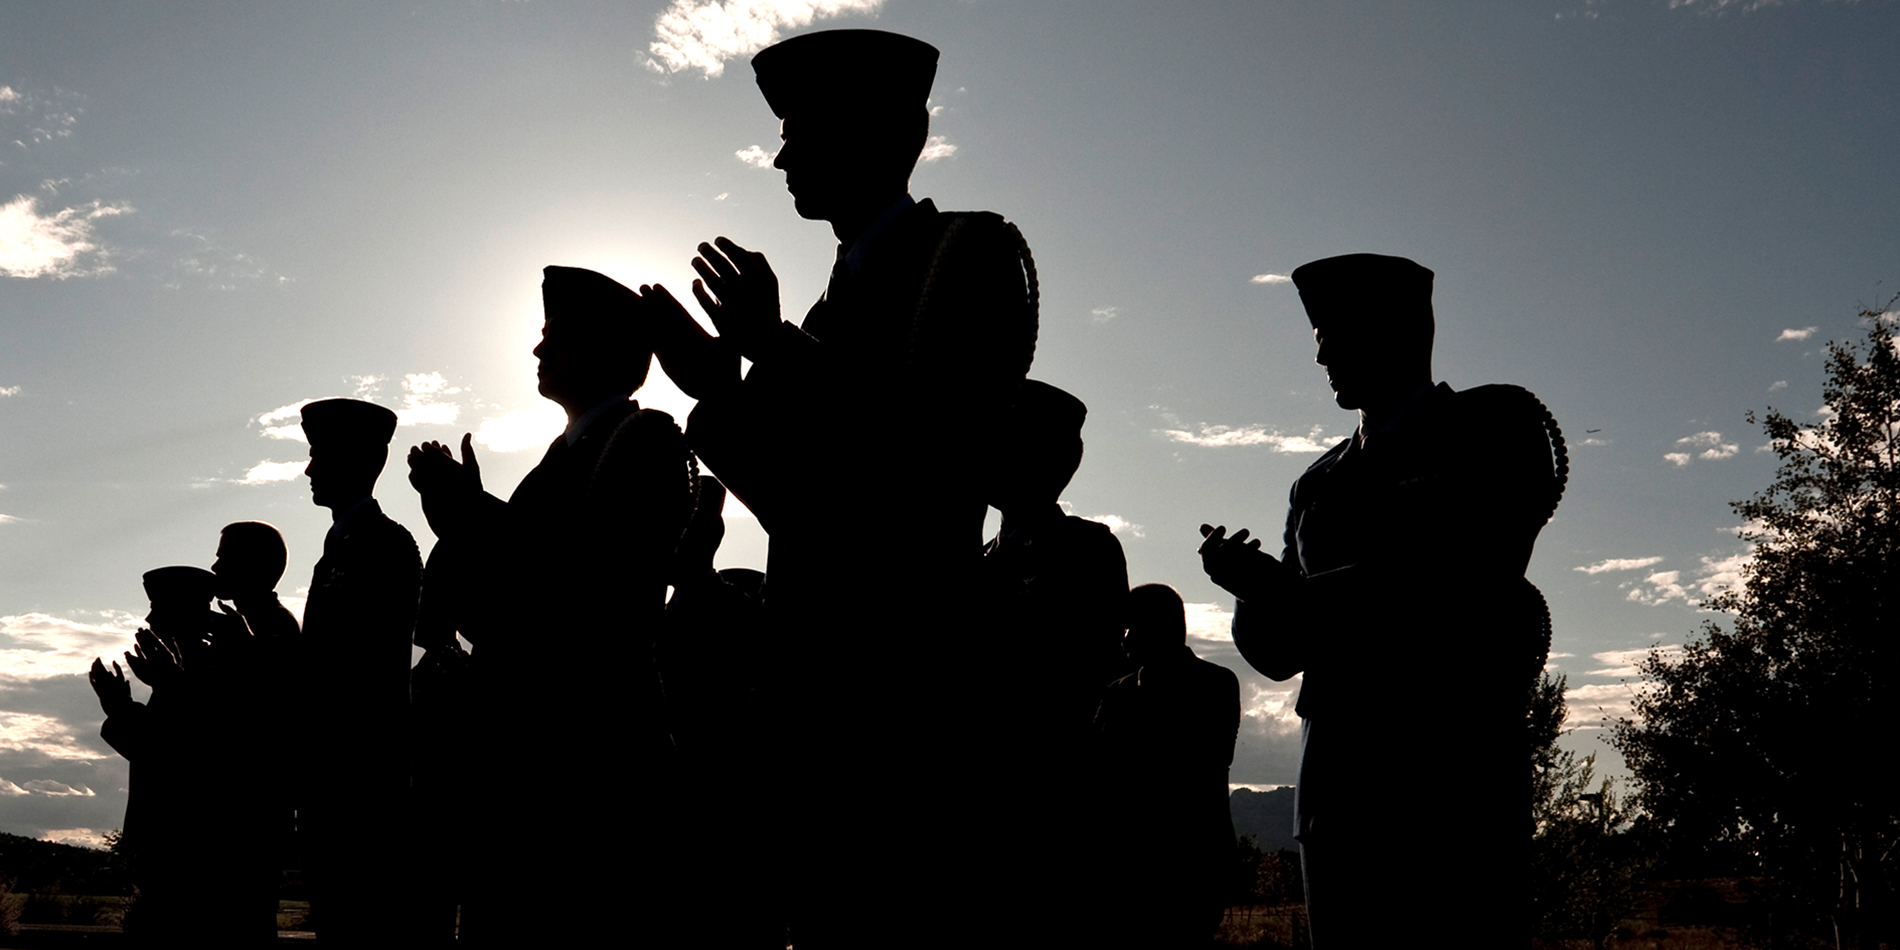 Soldiers standing together and clapping in shadow of sunny day